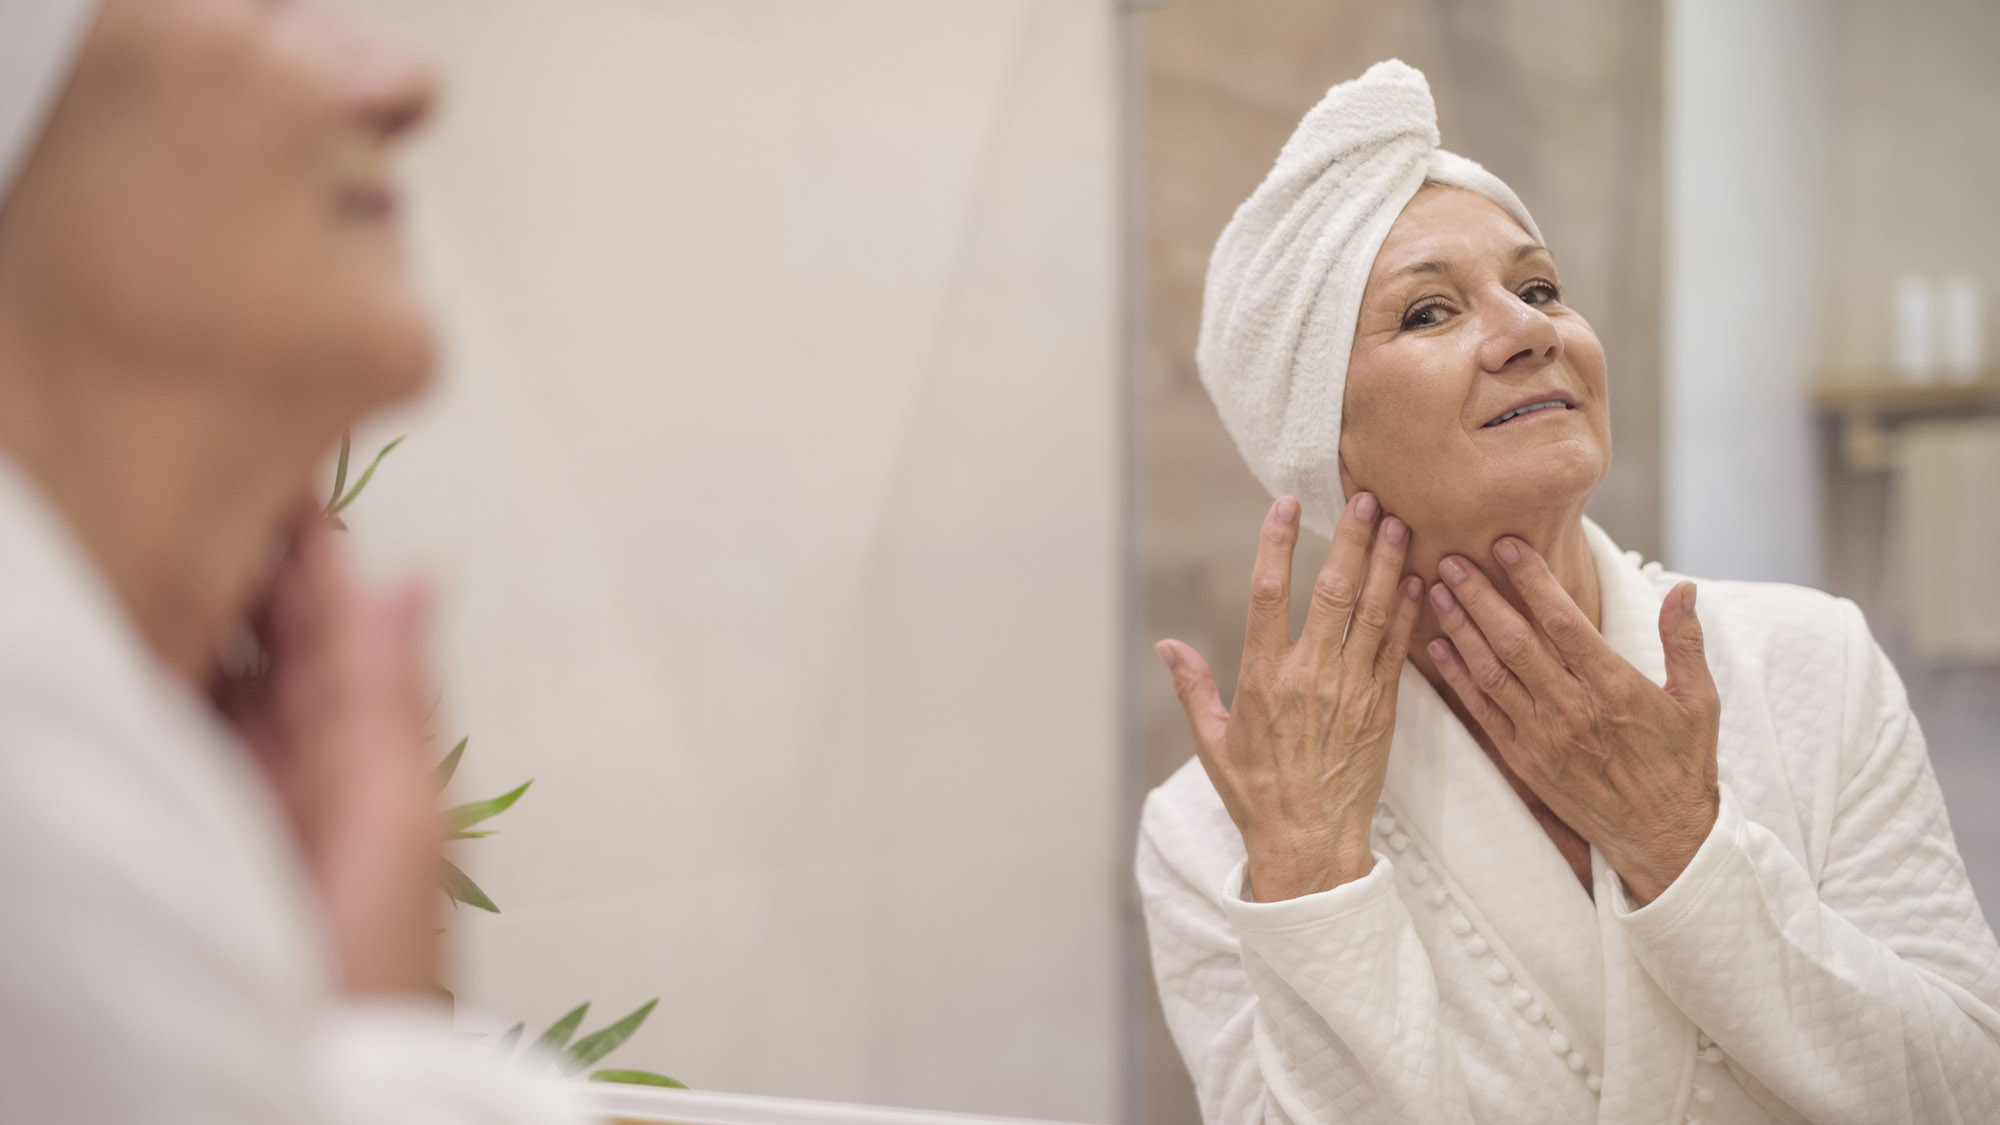 3 beauty habits that are ageing you